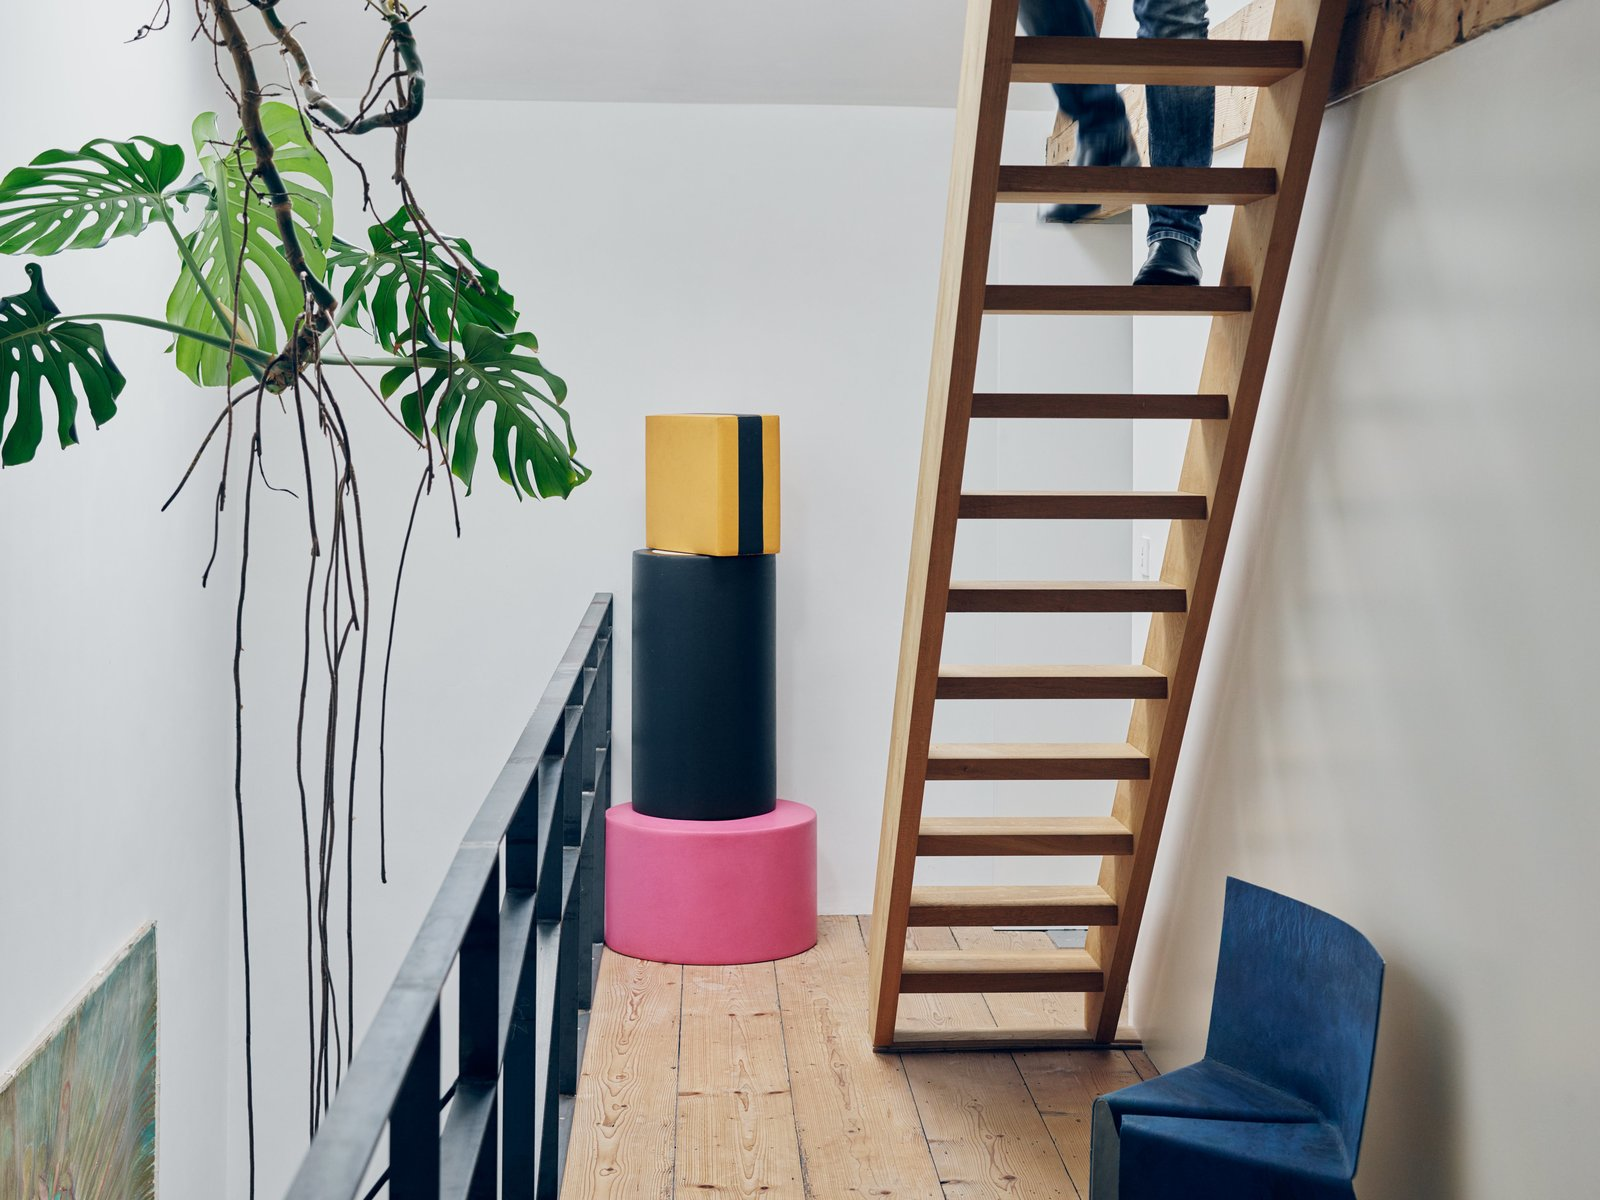 Staircase and Wood Tread A stack of foam poufs from Venlet's colorful, candy-inspired Let's Drop collection joins his blue, powder-coated Cake chair on the third-floor landing.  Photo 2 of 11 in Futuristic Forms Meet Historical Details in Designer Danny Venlet's Brussels Home